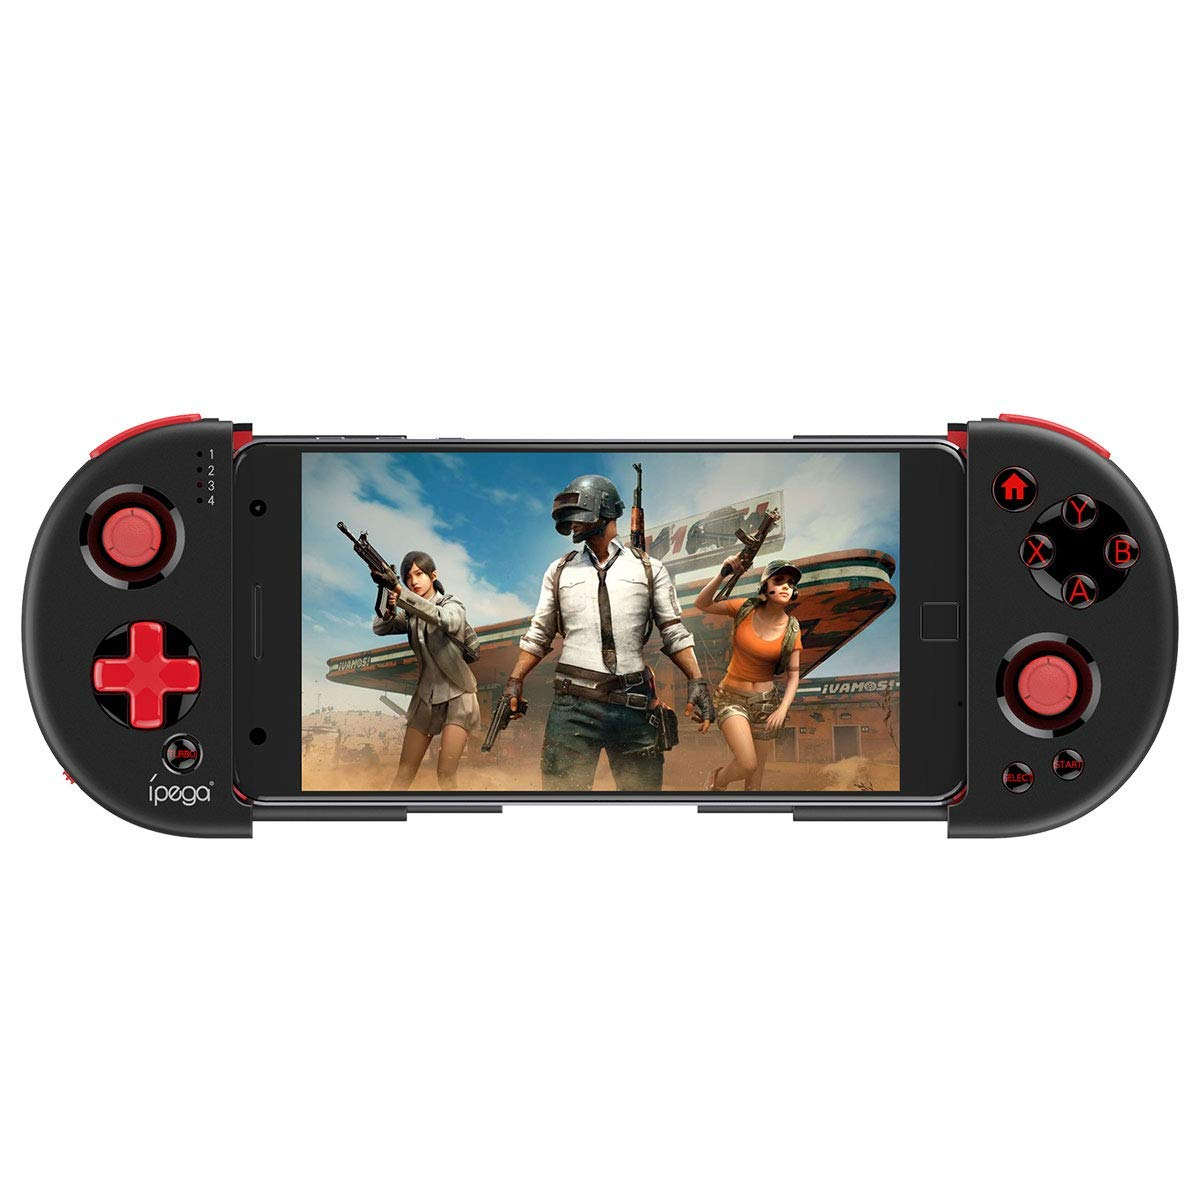 Mobile Game Controller, DoinMaster Wireless Gamepad Controller Joystick Telescopic Game Controller for iOS Android iPhone Tablet PC TV Box